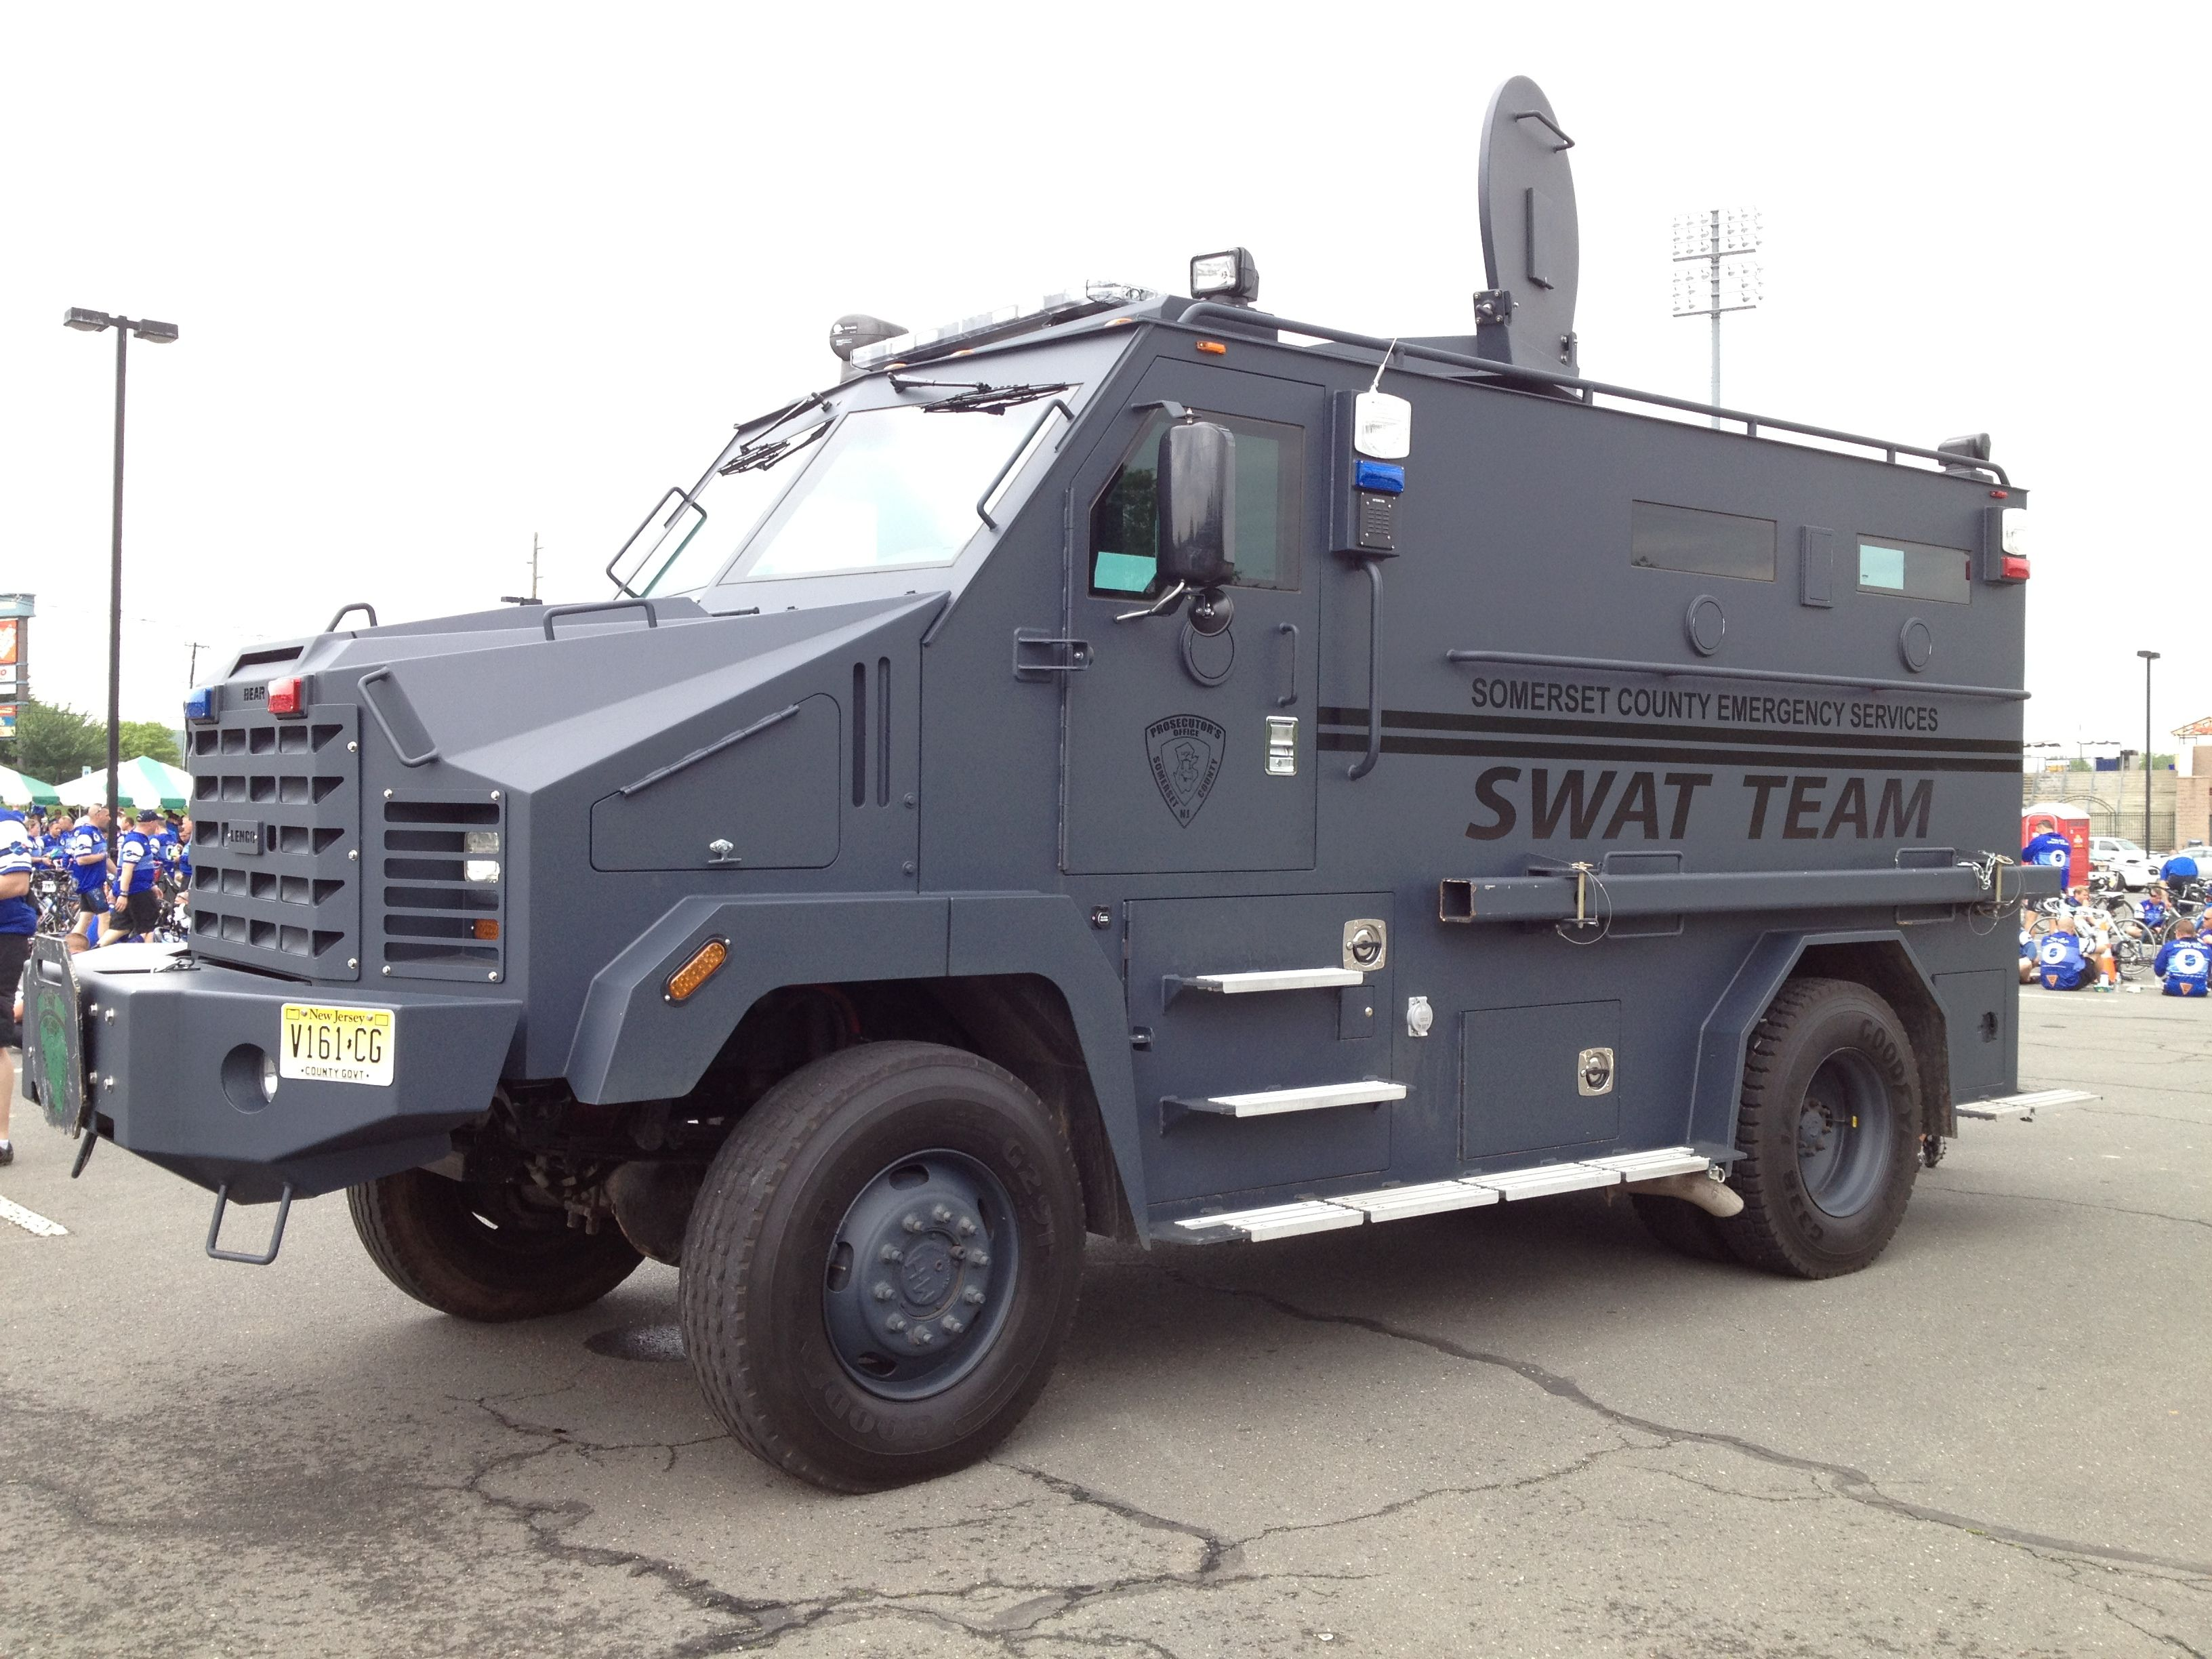 Somerset County Nj Swat Truck With Images Police Truck